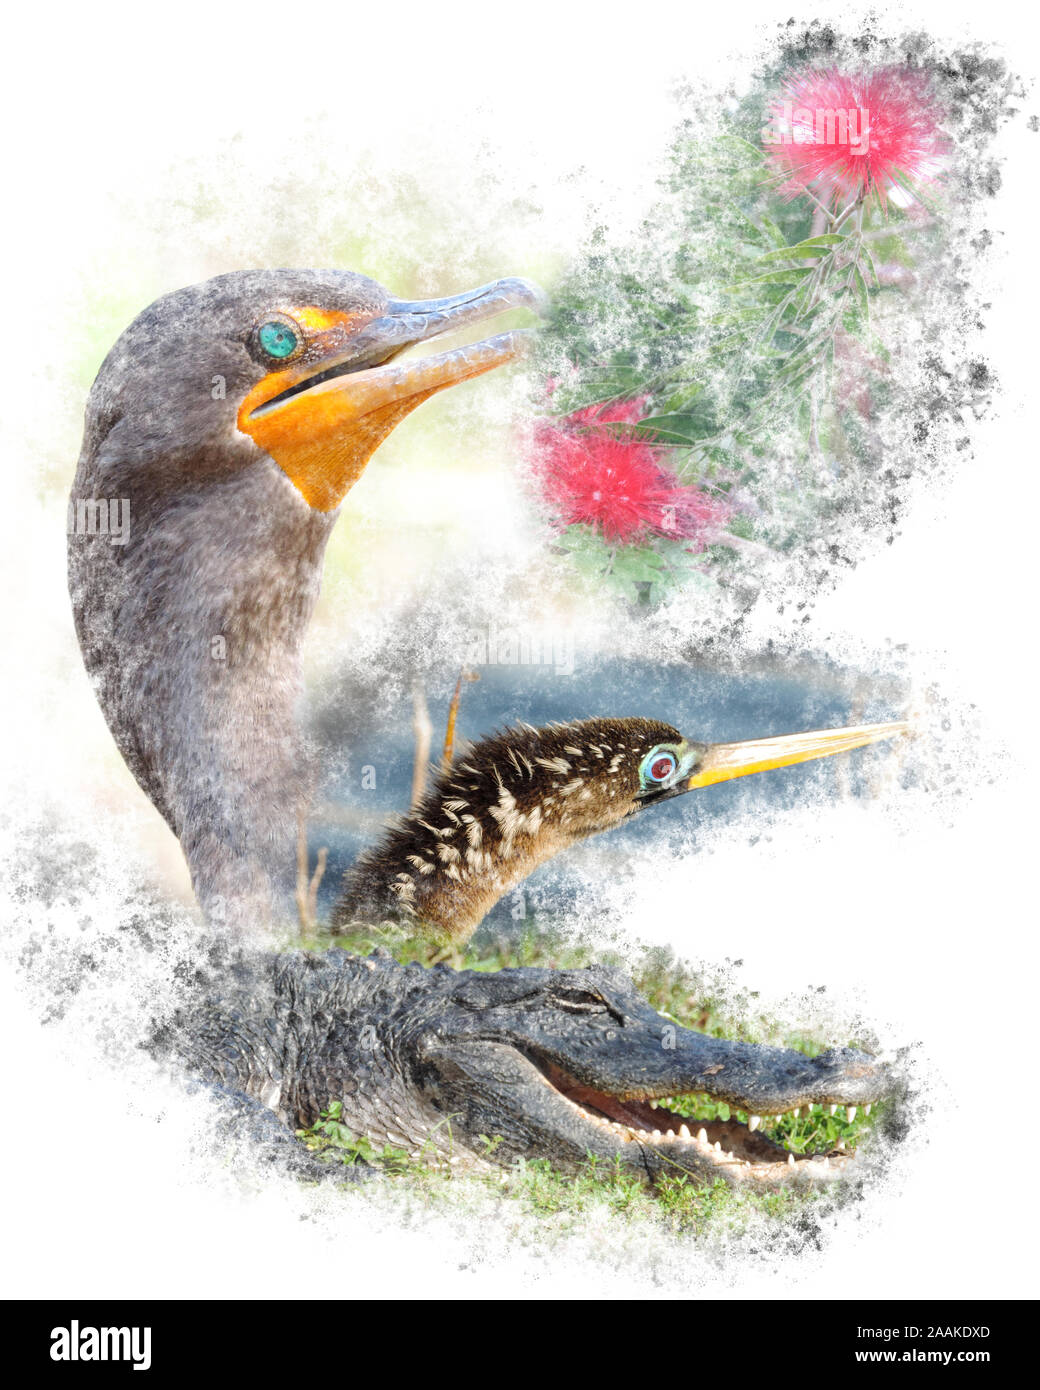 Wildlife of the Everglades National Park - Image-Montage of Birds, Alligator, Flowers and Butterfly Stock Photo